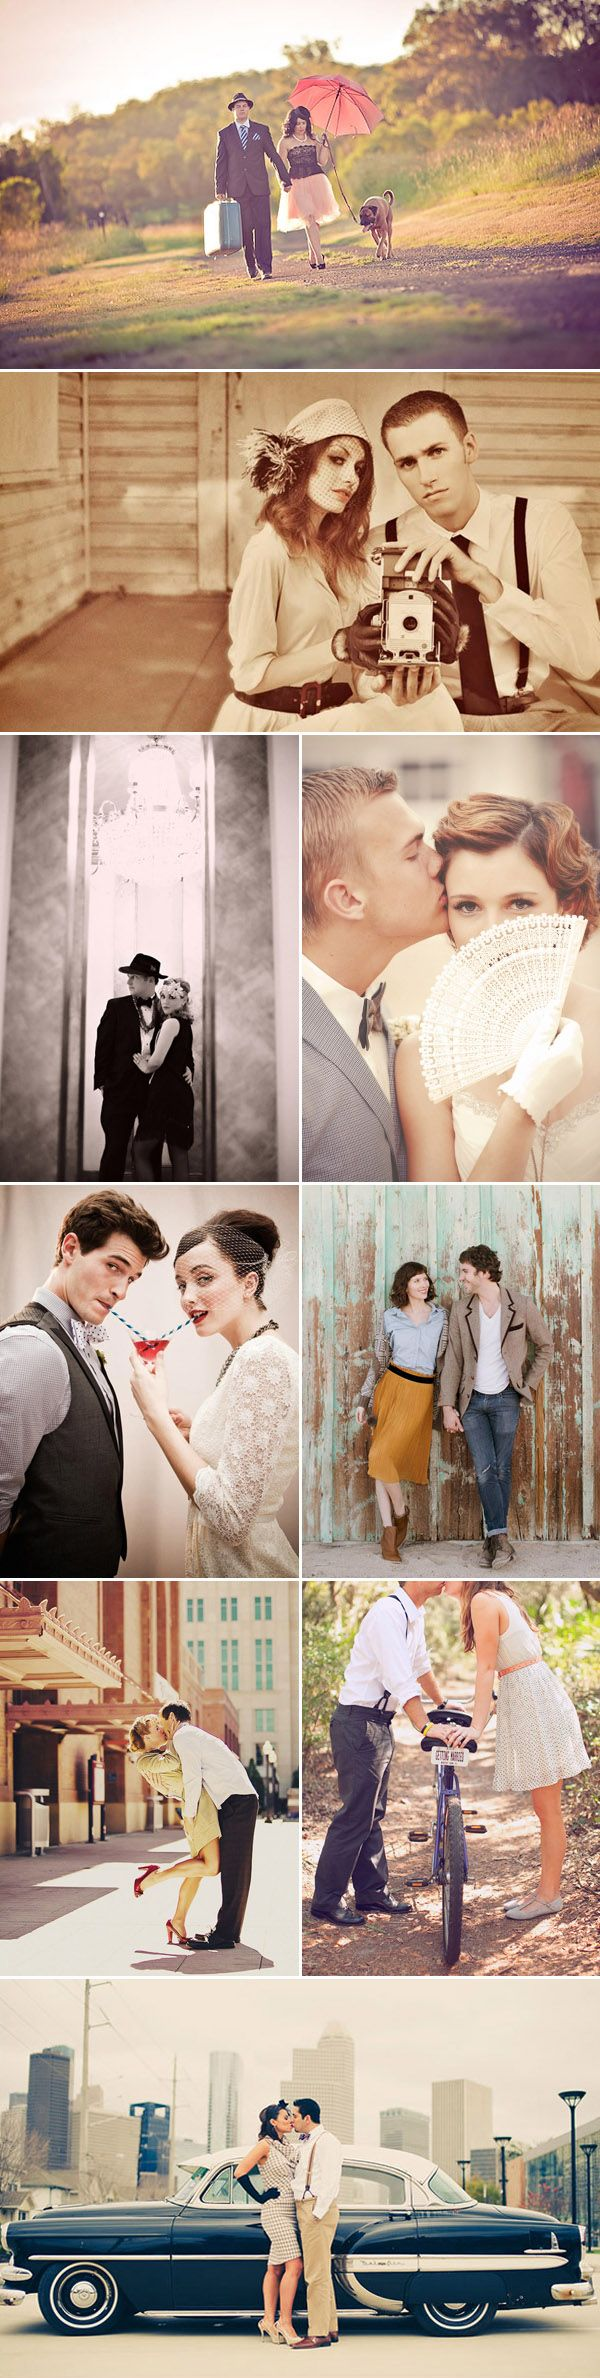 Amazing 30 Vintage Wedding Ideas For 2017 Trends Oh Best Day Ever Vintage Inspired Engagement Photos Wedding Engagement Photos Wedding Photos